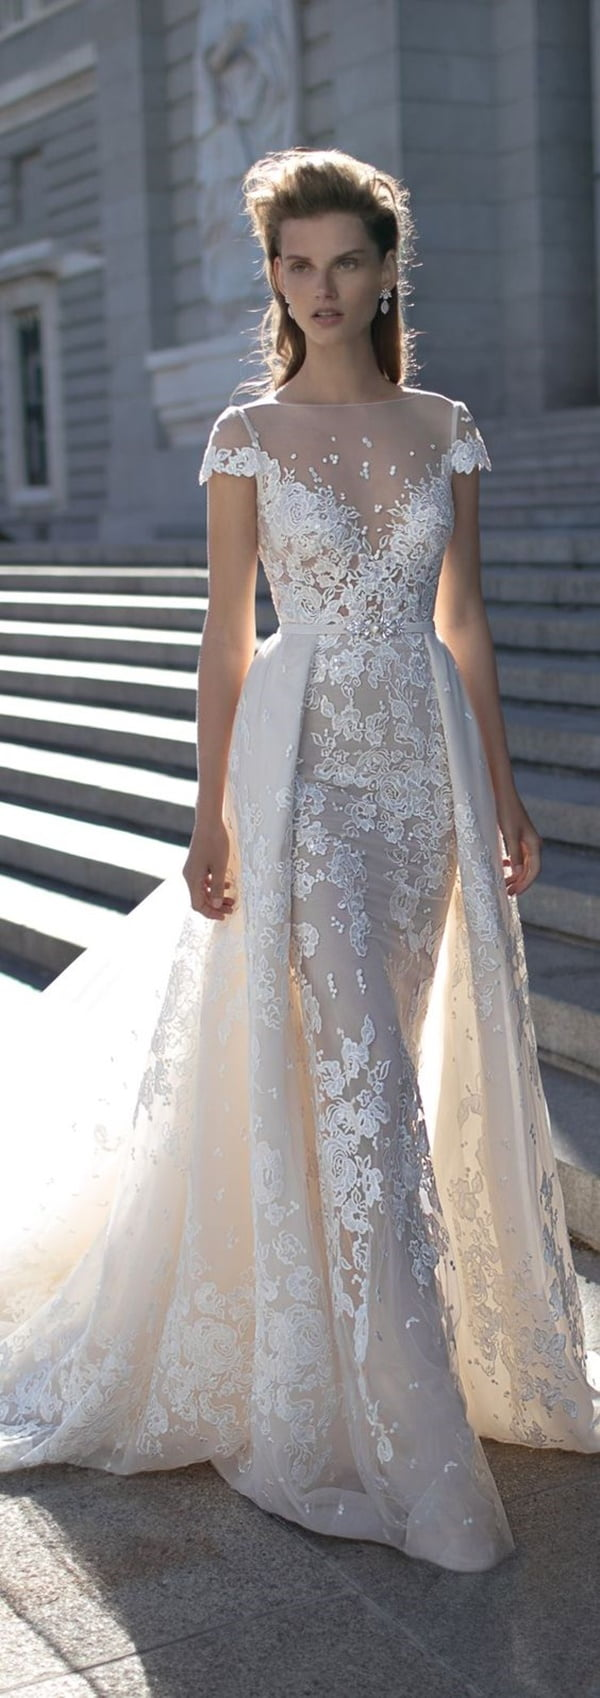 wedding-dress-trends-2016-4